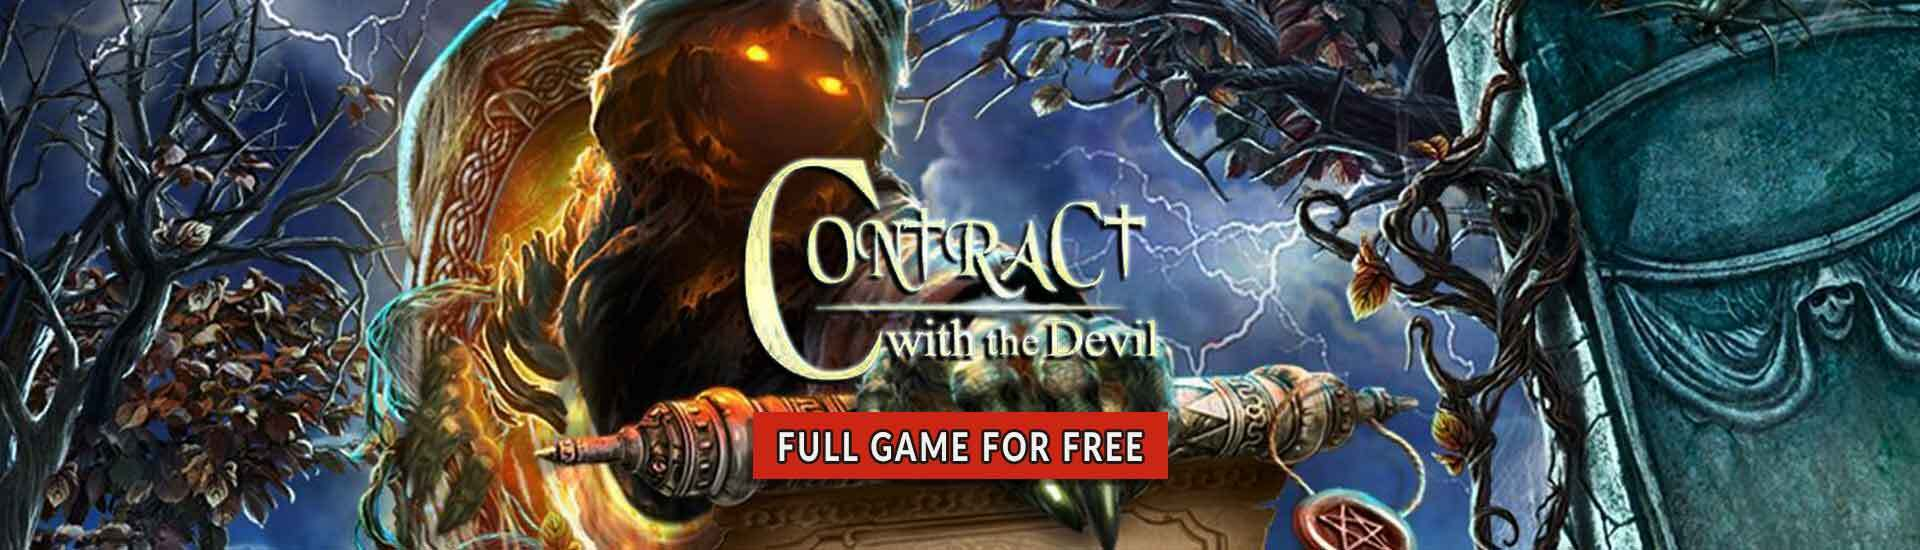 Contract With The Devil cover